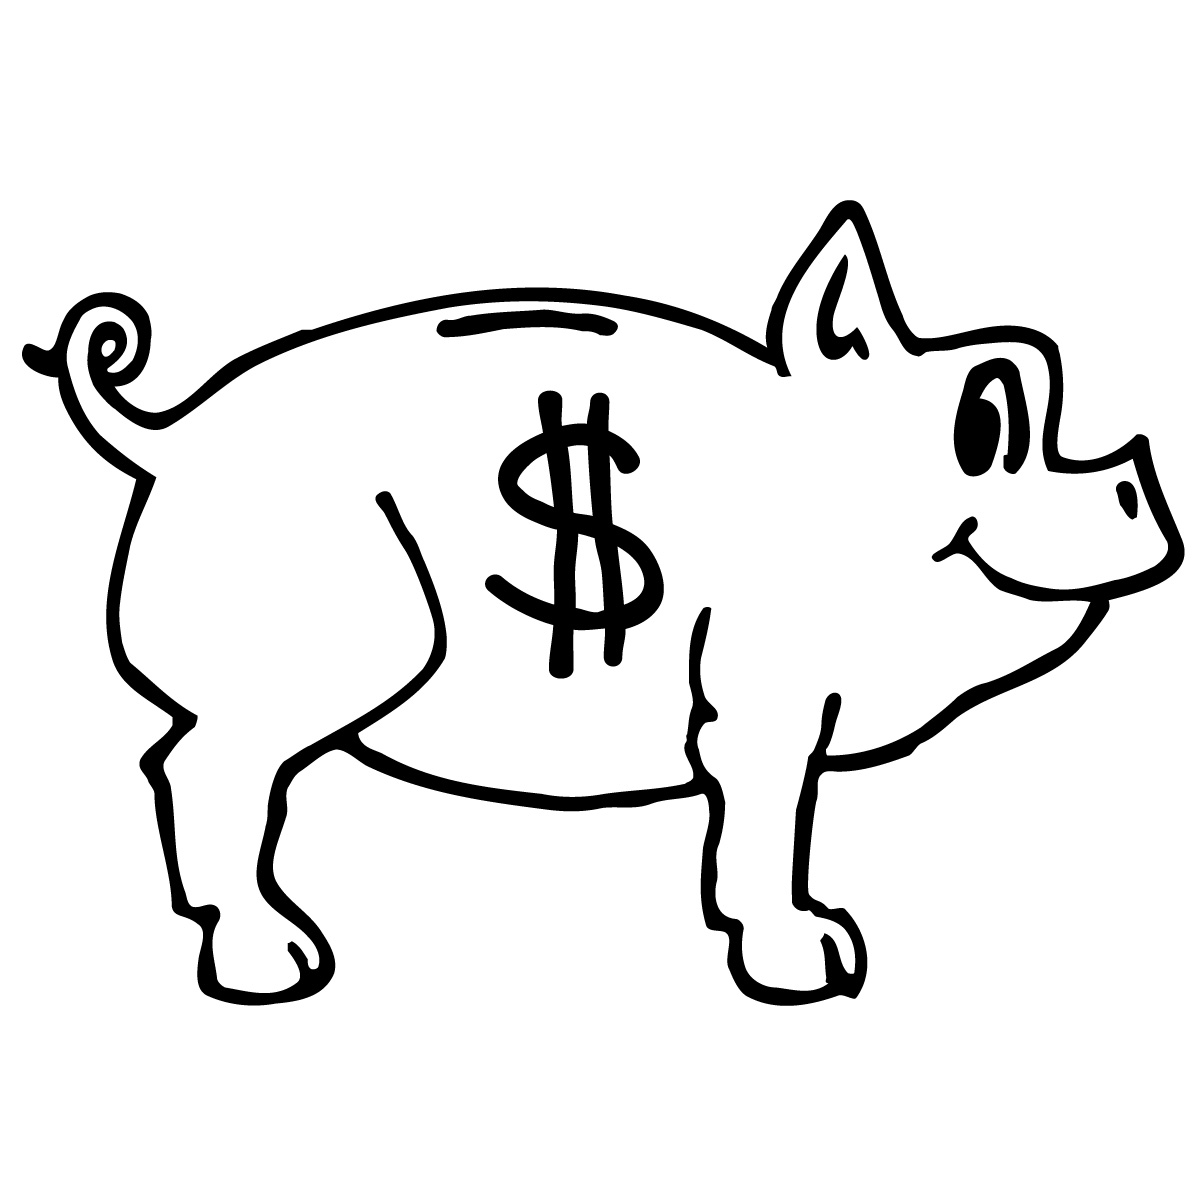 dollar sign clipart black and white clipart panda free